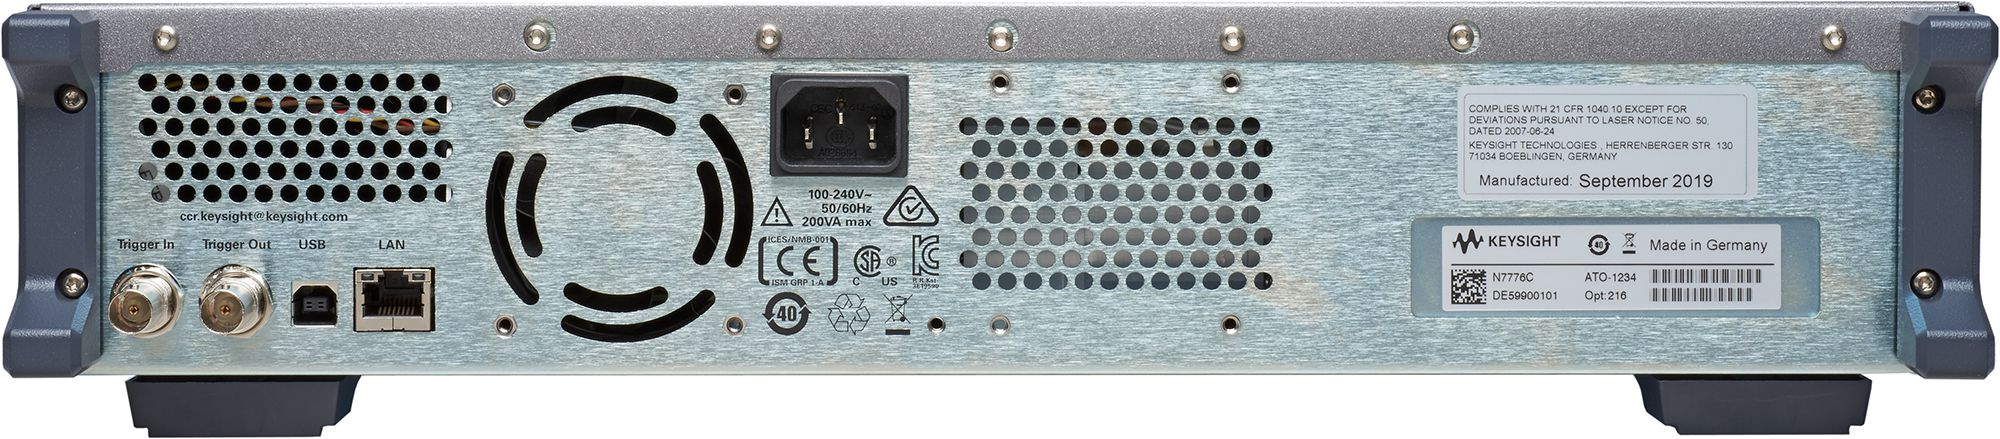 N7778C Tunable Laser Source, High Power and Low SSE, Value Line